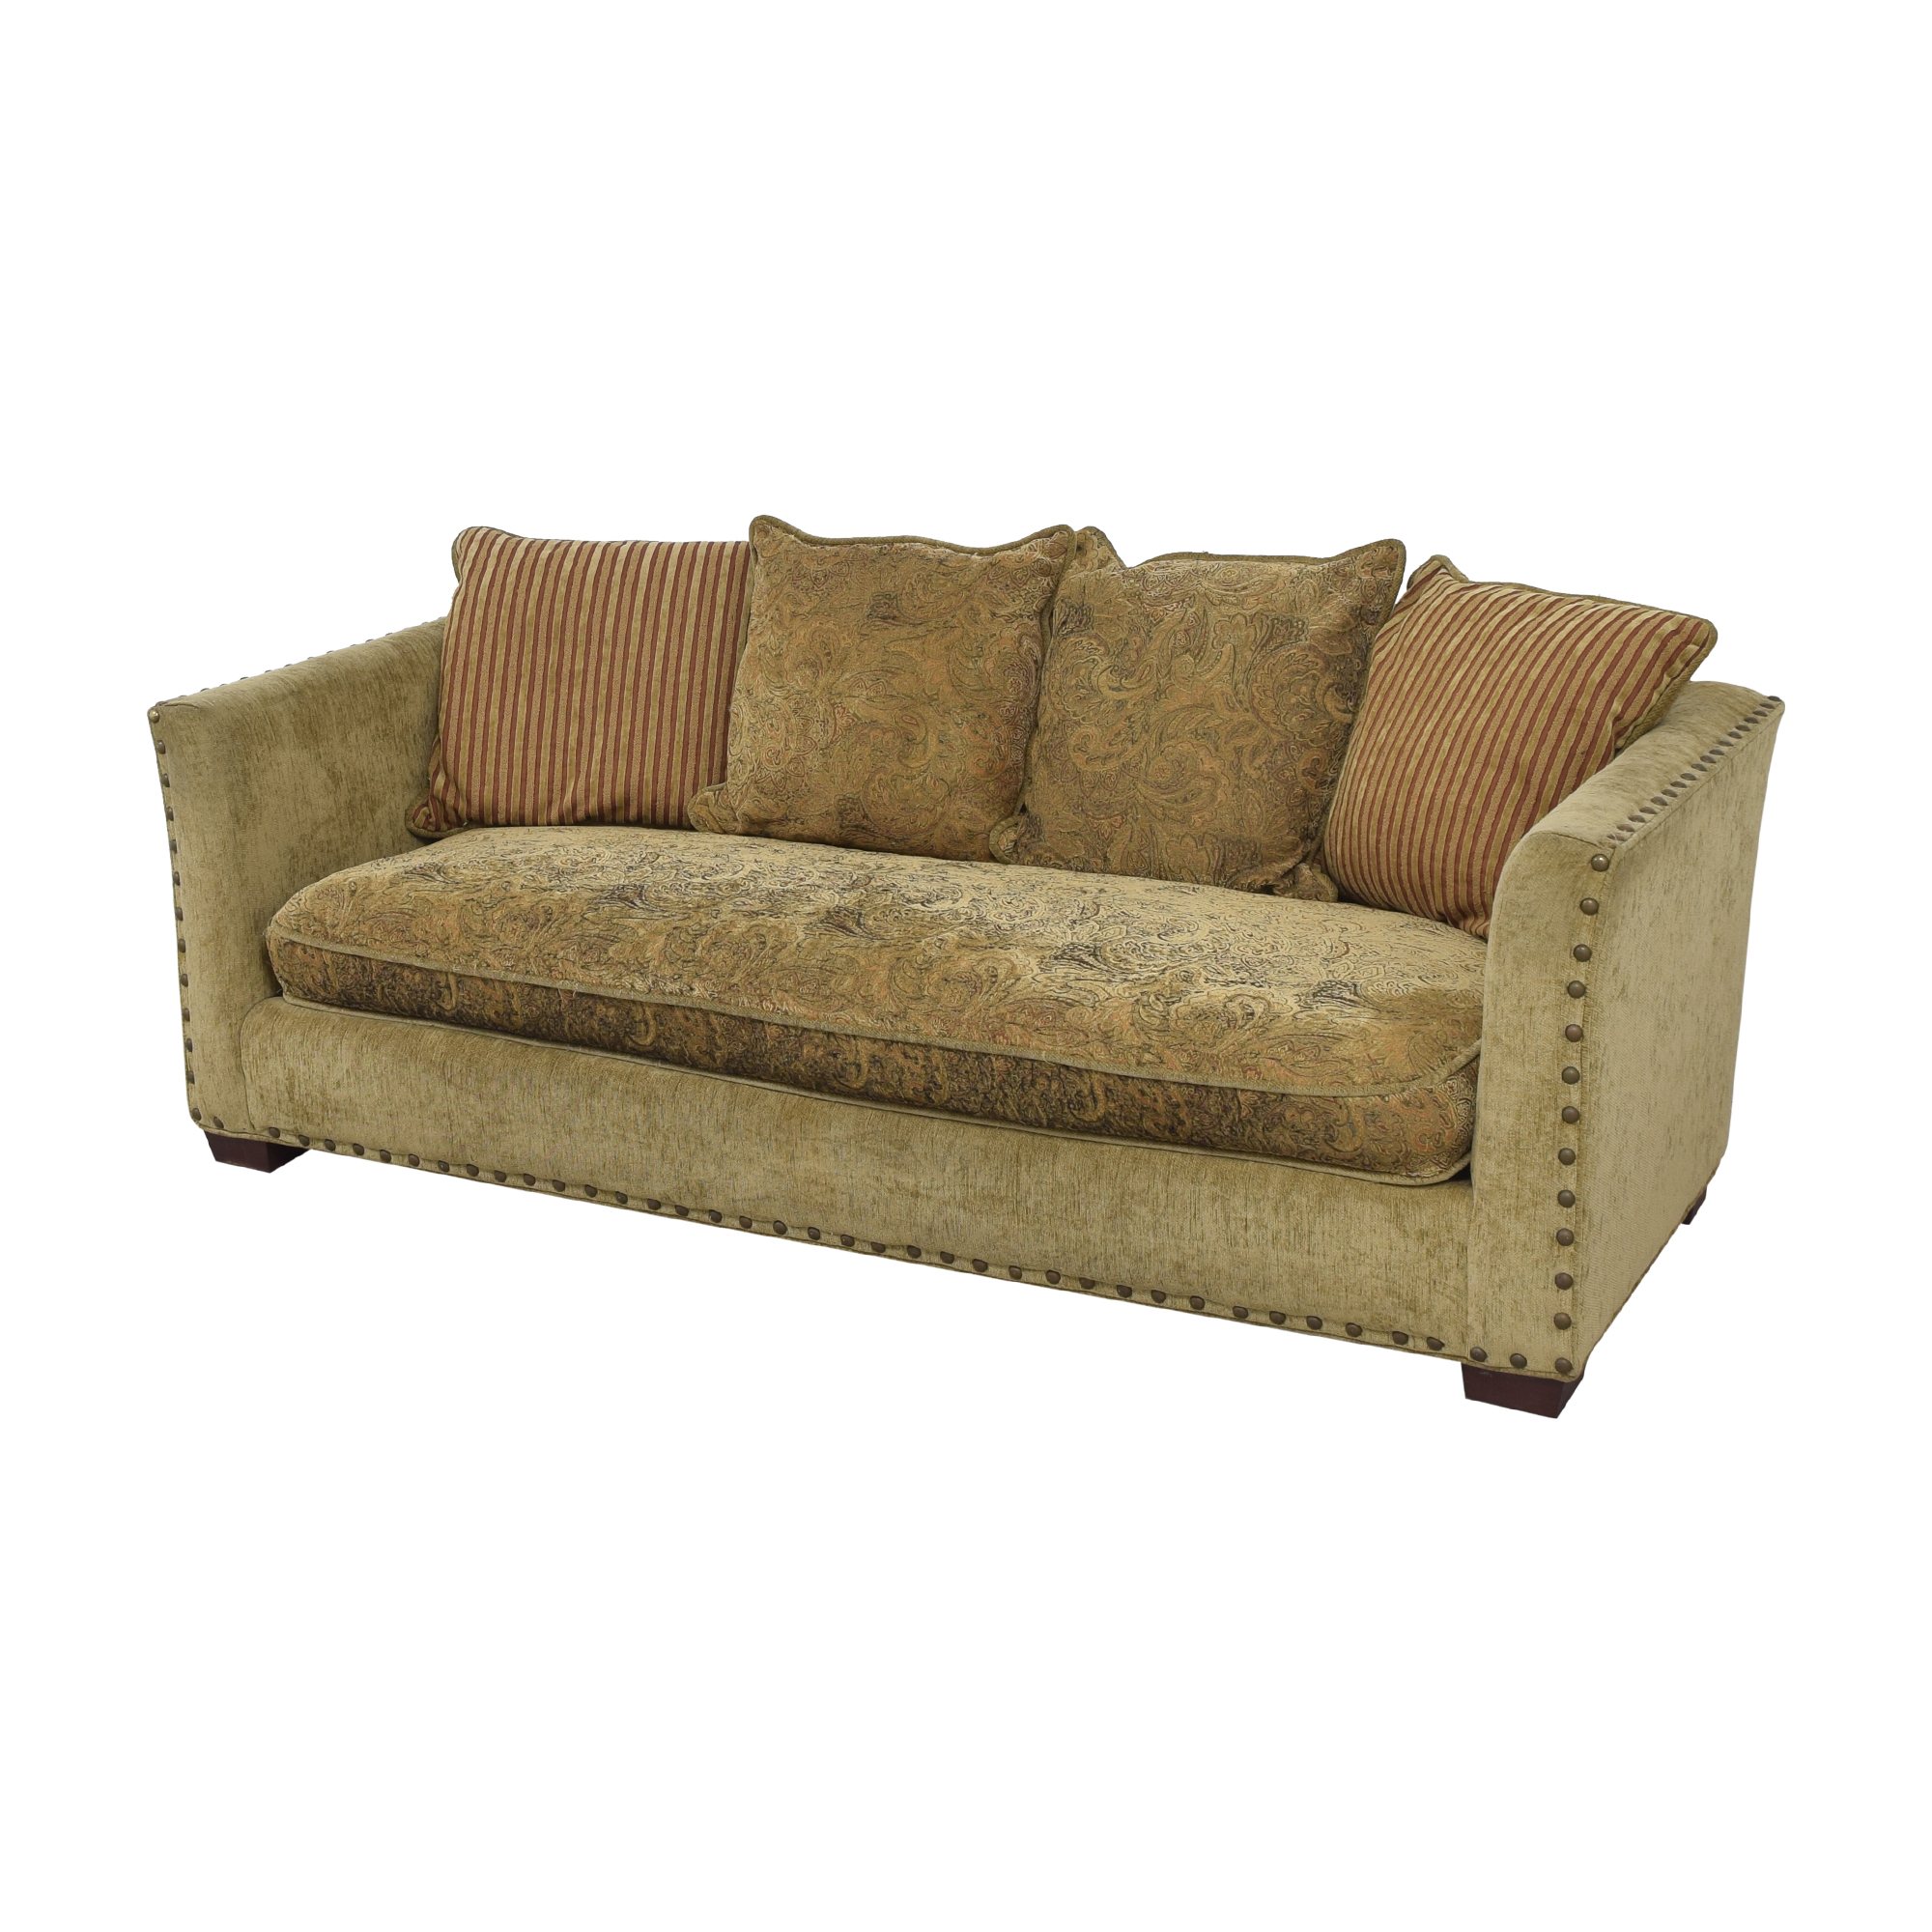 buy Robin Bruce Robin Bruce Bench Cushion Sofa online